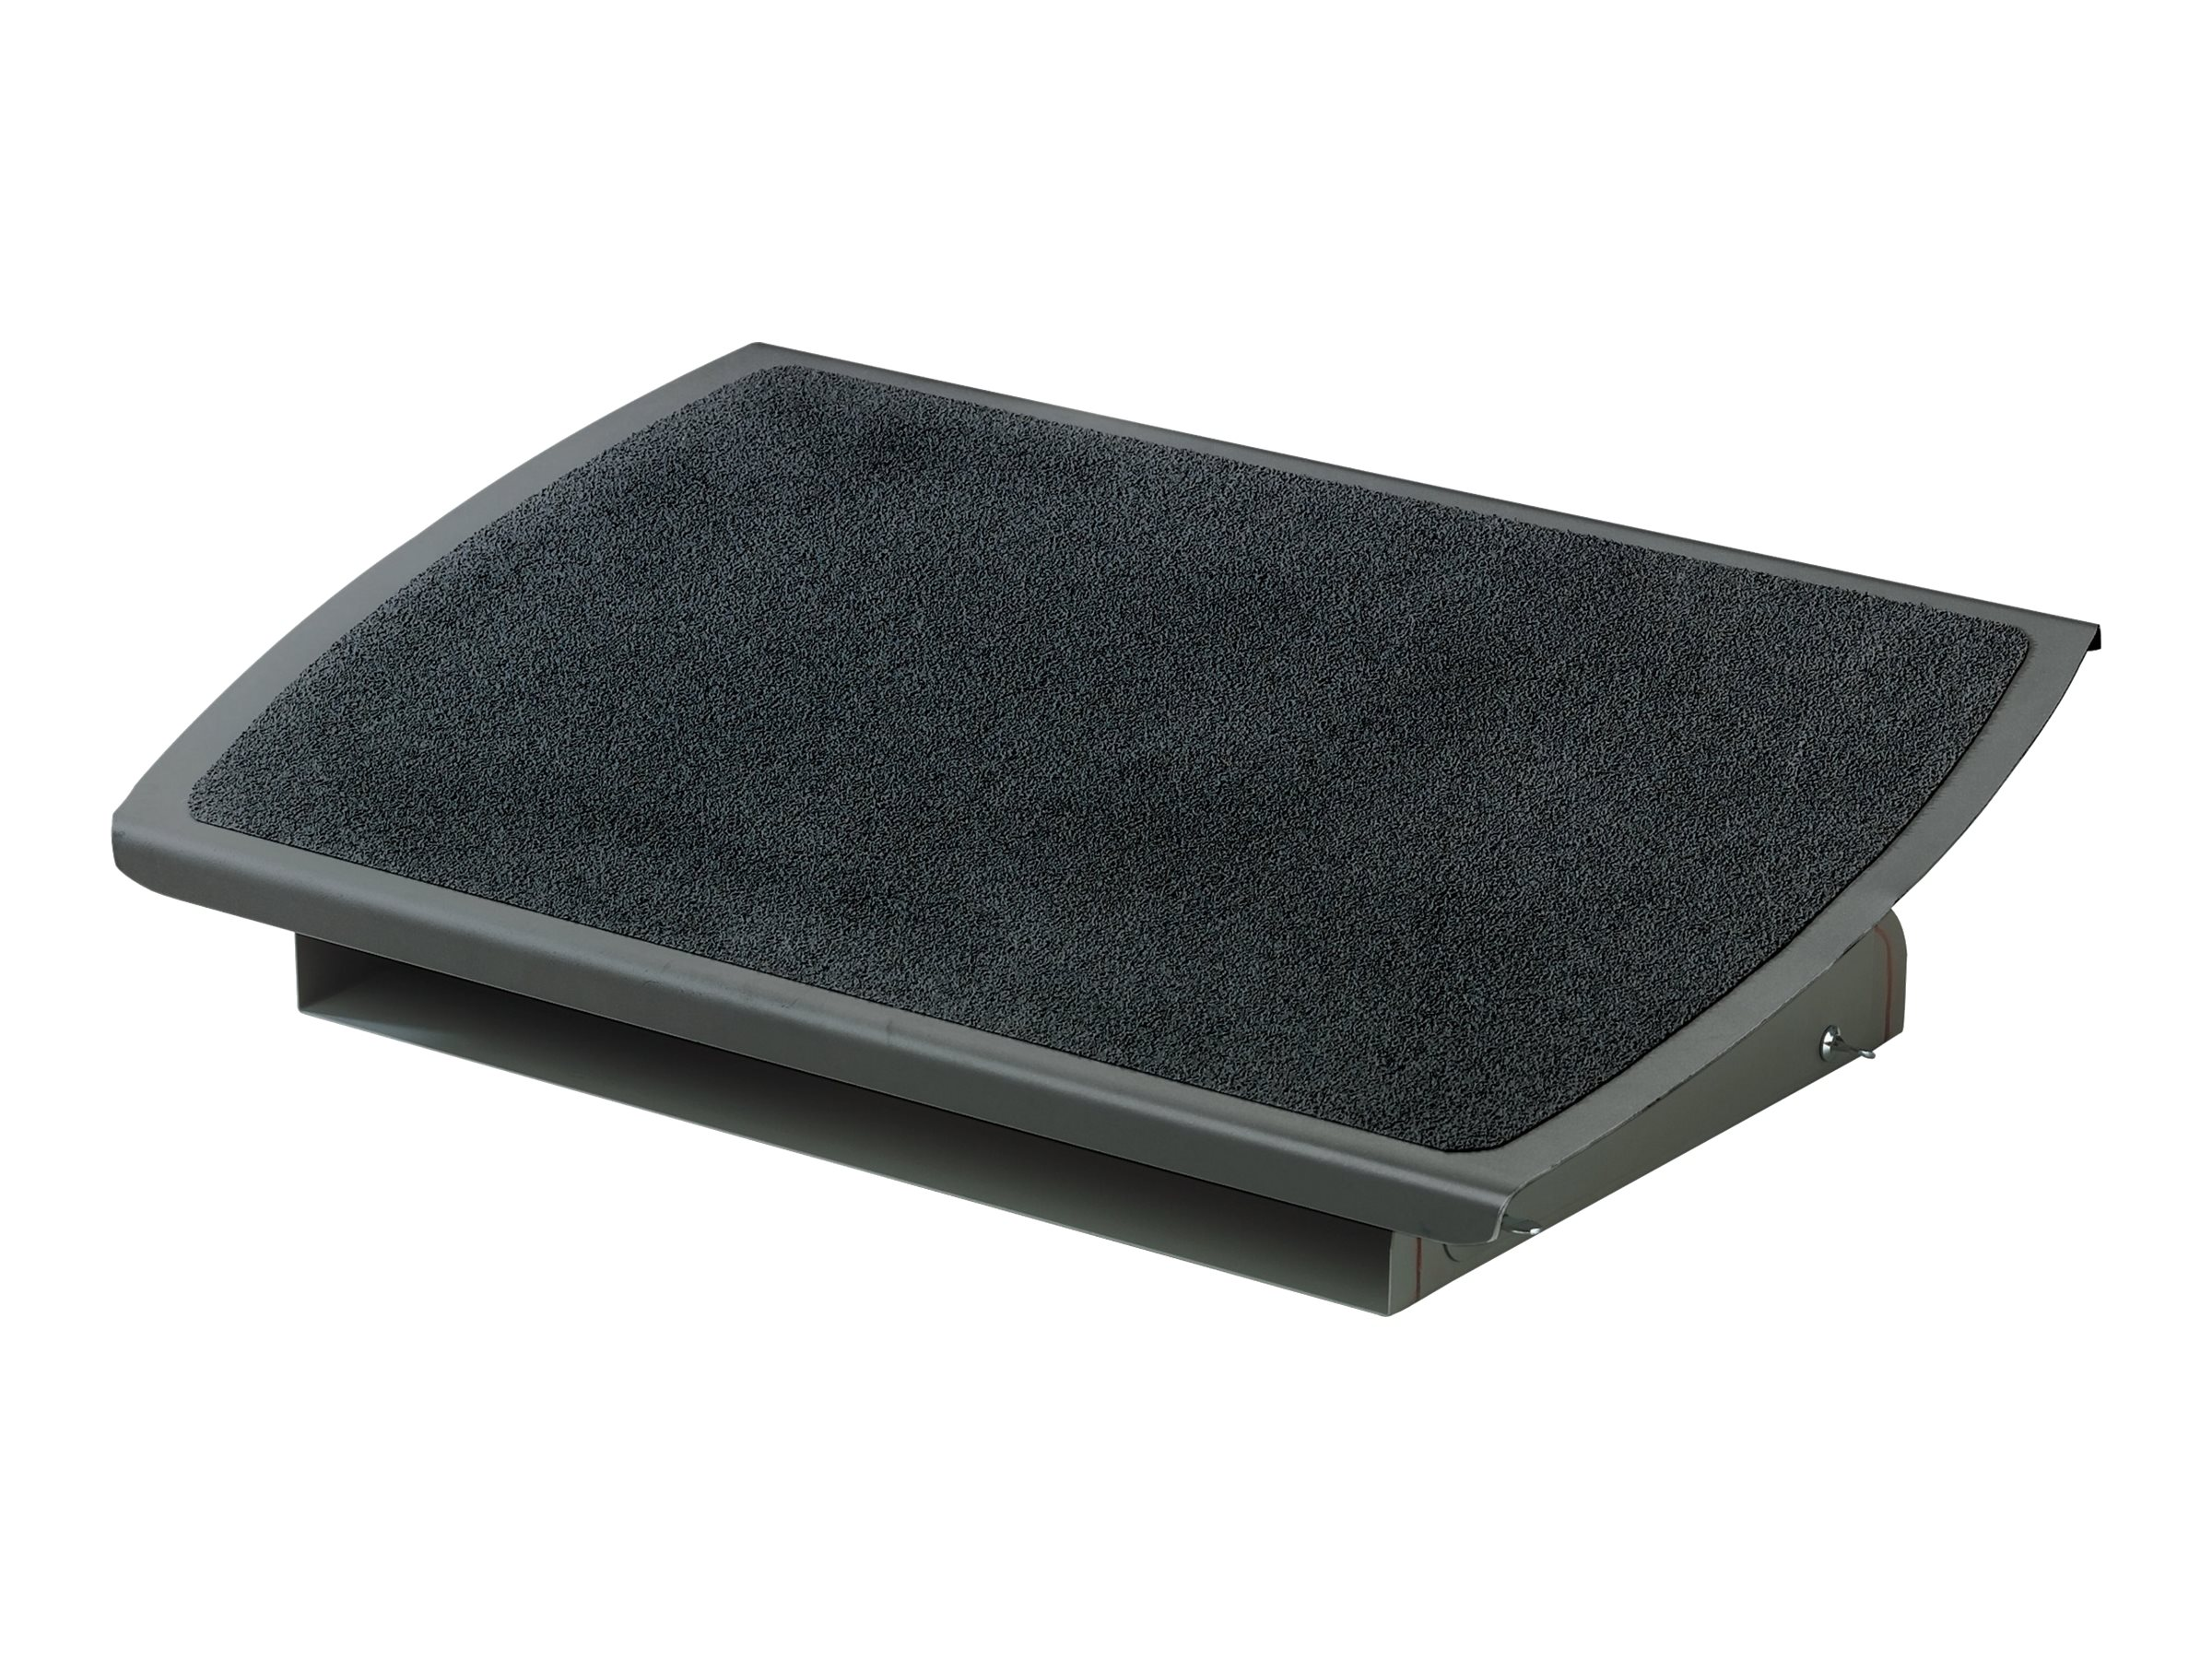 3M FR530CB Adjustable Foot Rest  - Black, FR530CB, 4896721, Ergonomic Products